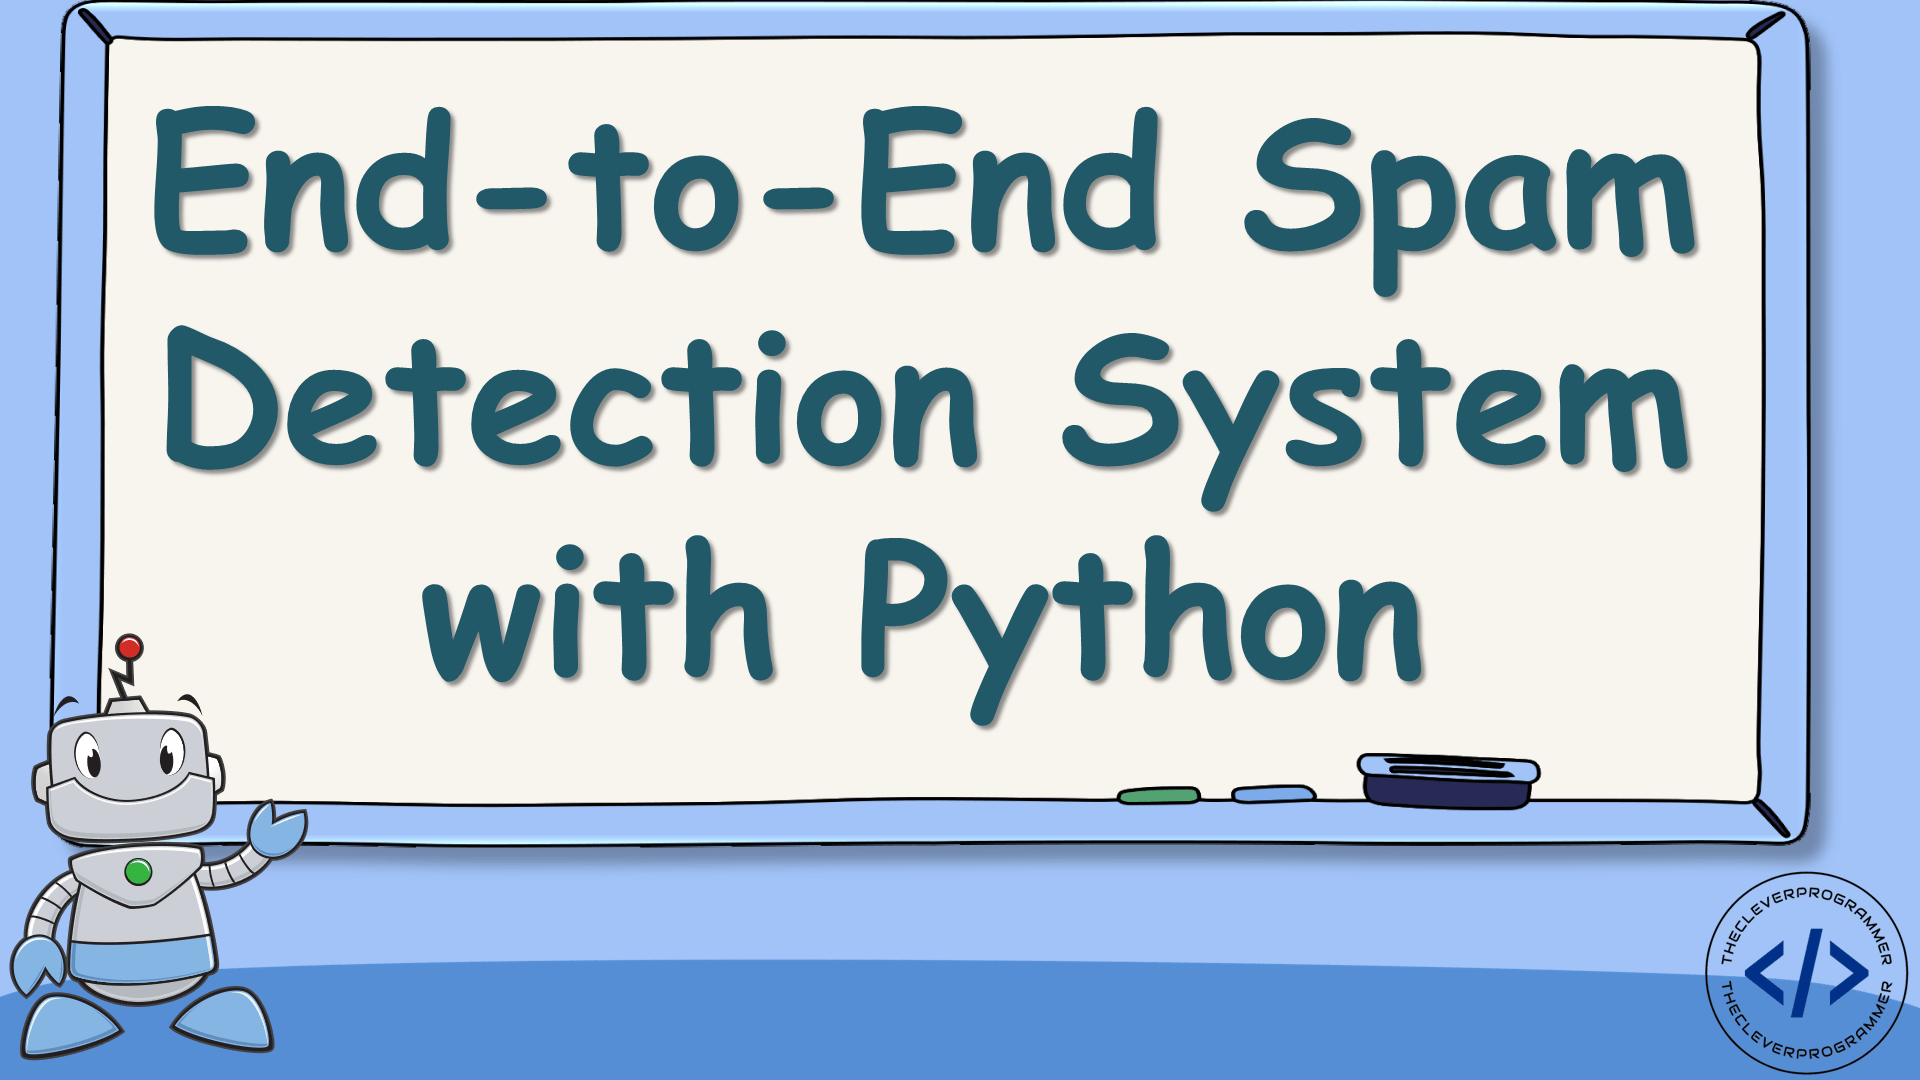 End-to-End Spam Detection with Python